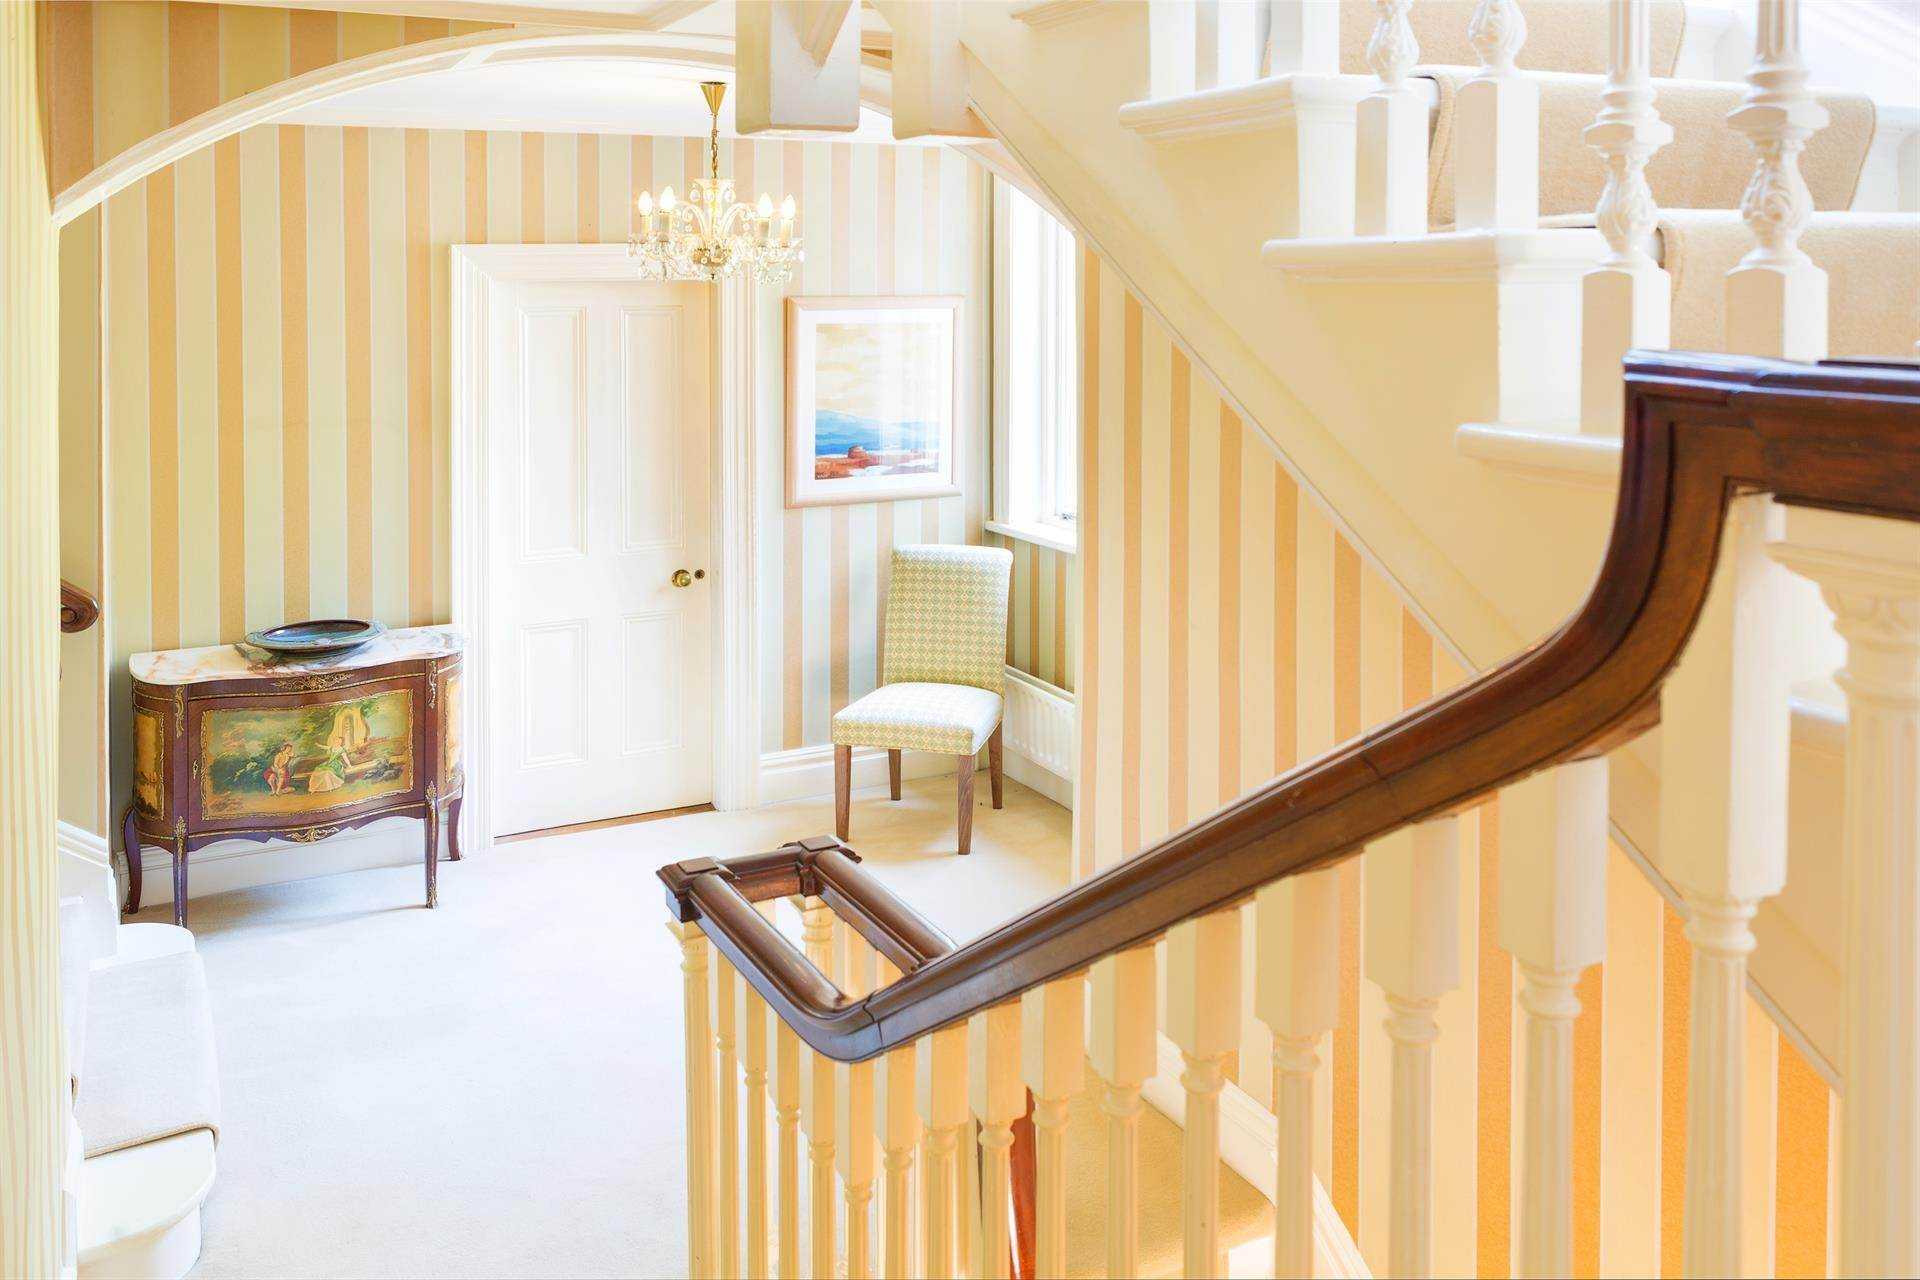 13. Single Family Home for Sale at Foxrock, Ireland